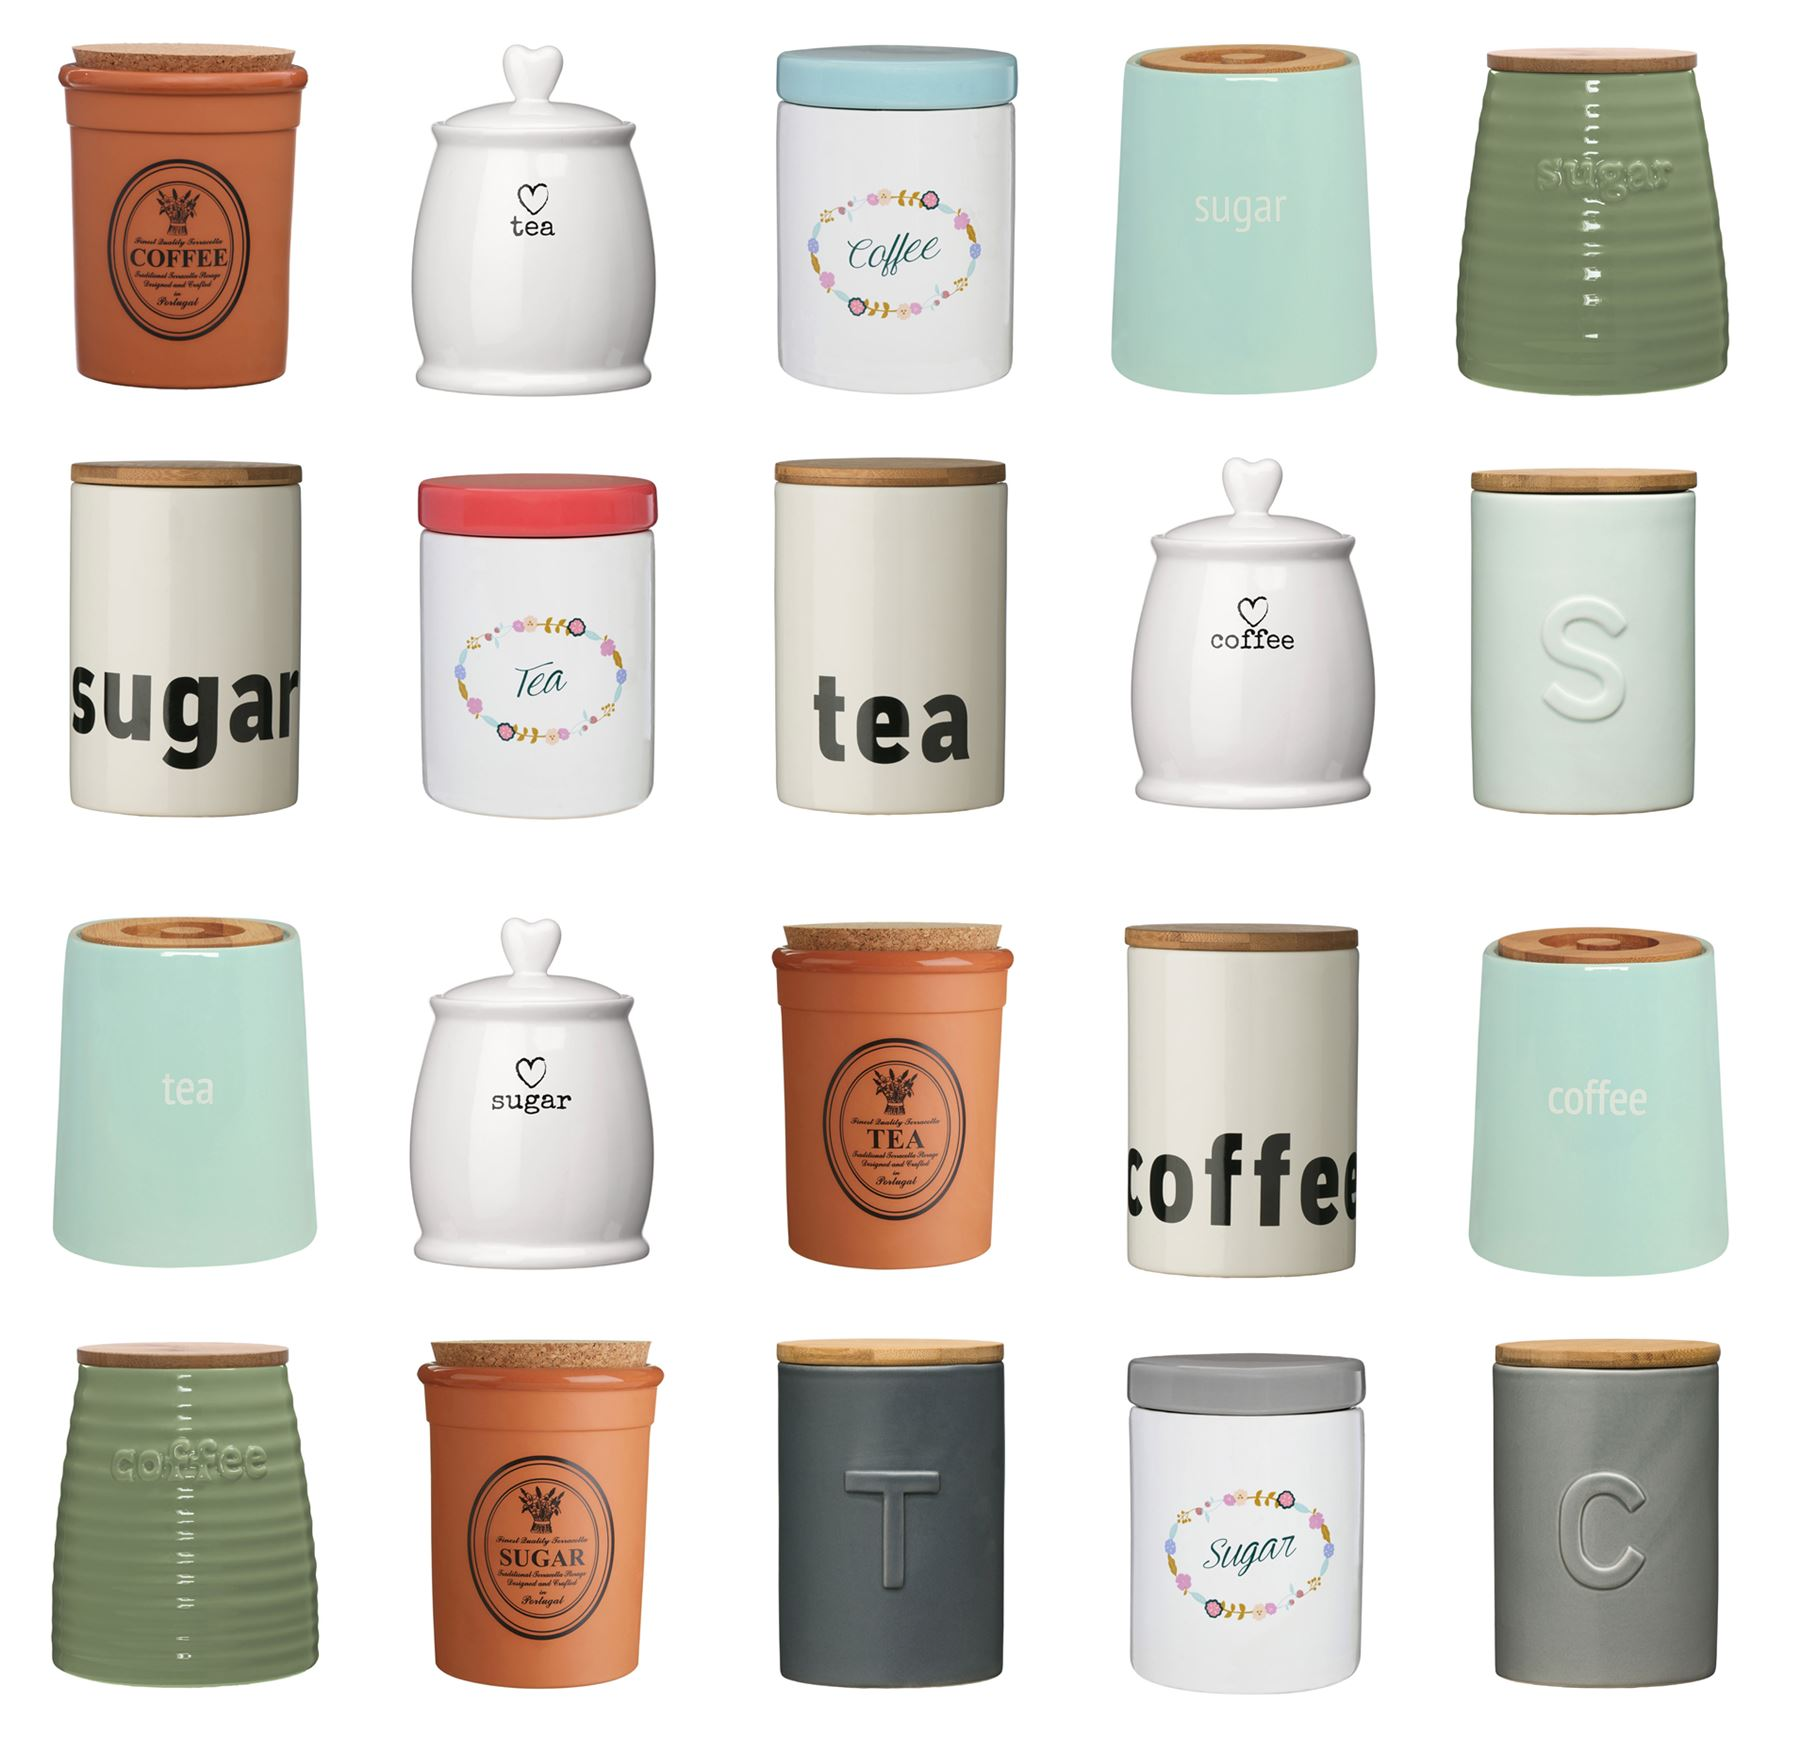 Details about Tea Coffee Sugar Canisters Pots Kitchen Storage Jars  /Ceramic/Bamboo/Mix Match